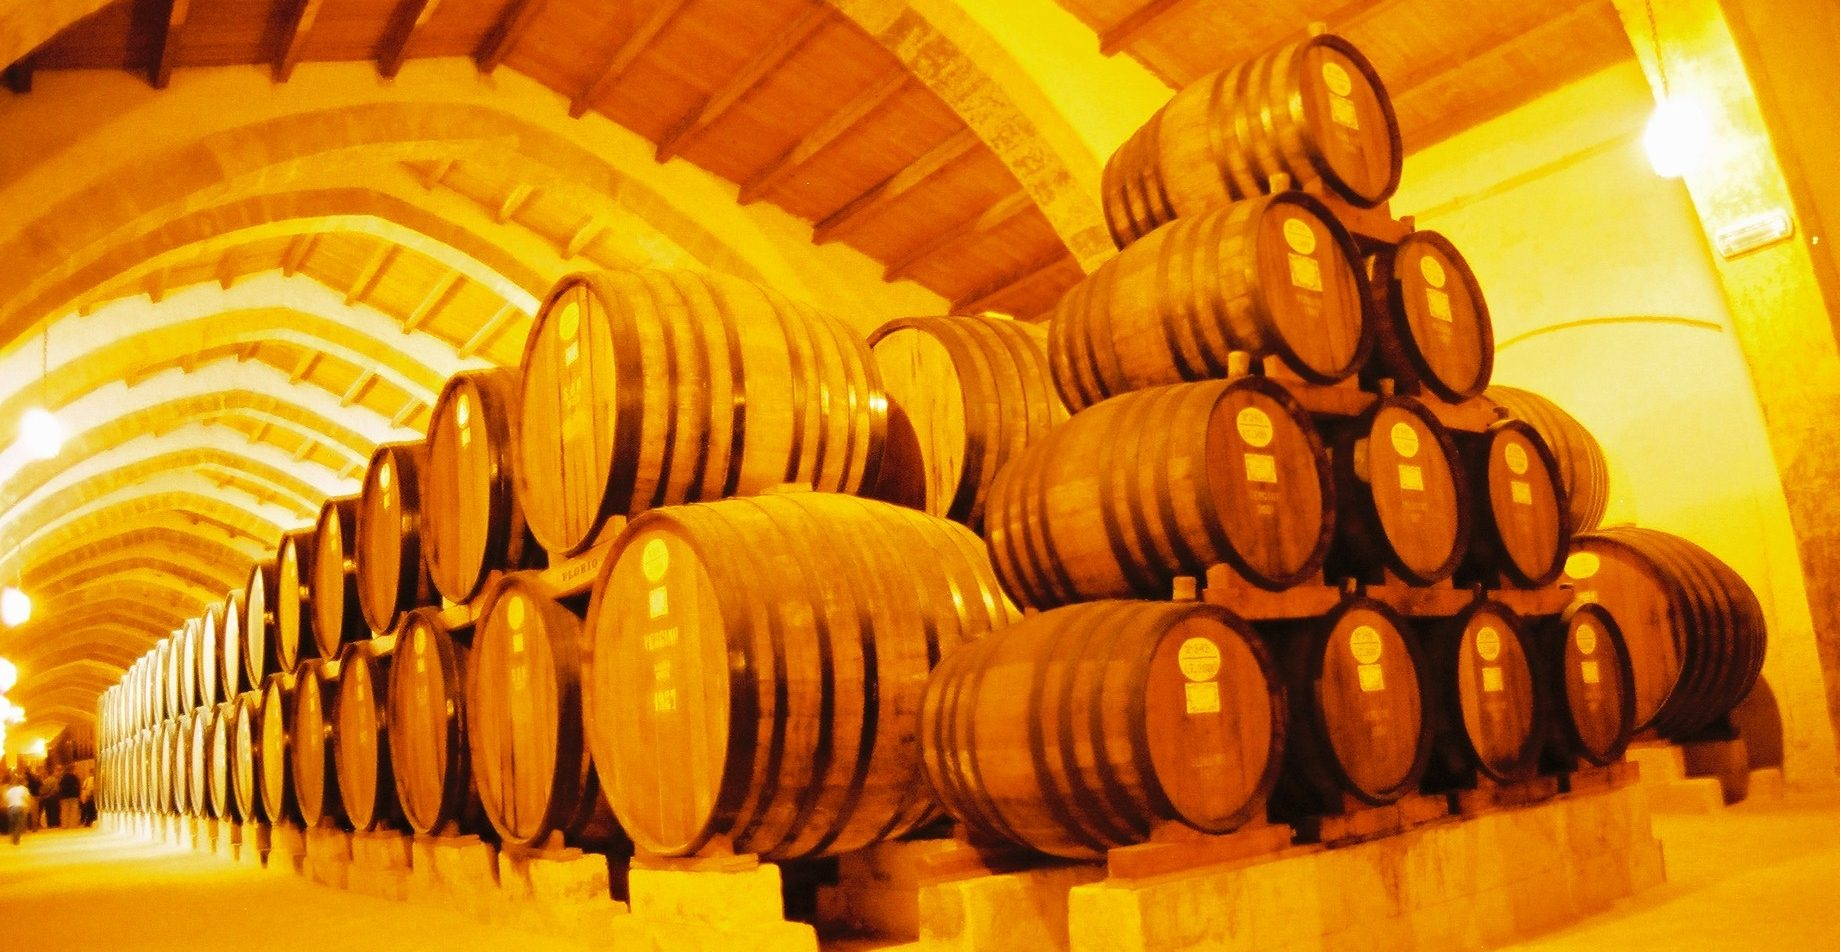 Processing aids for wine production